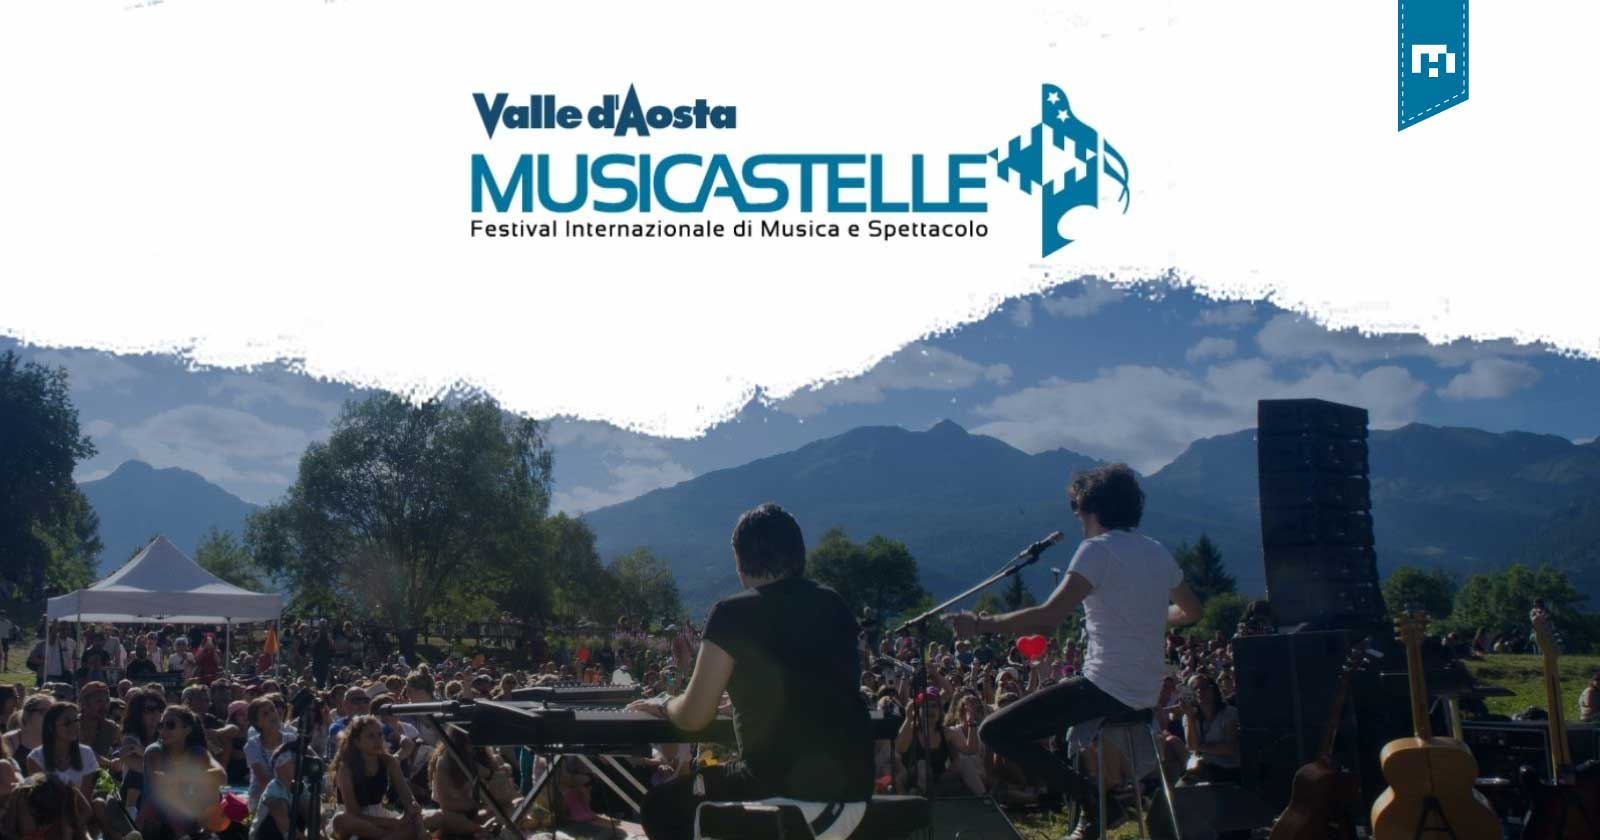 musicastelle_outdoor_valledaosta_web_digital_marketing_turismo